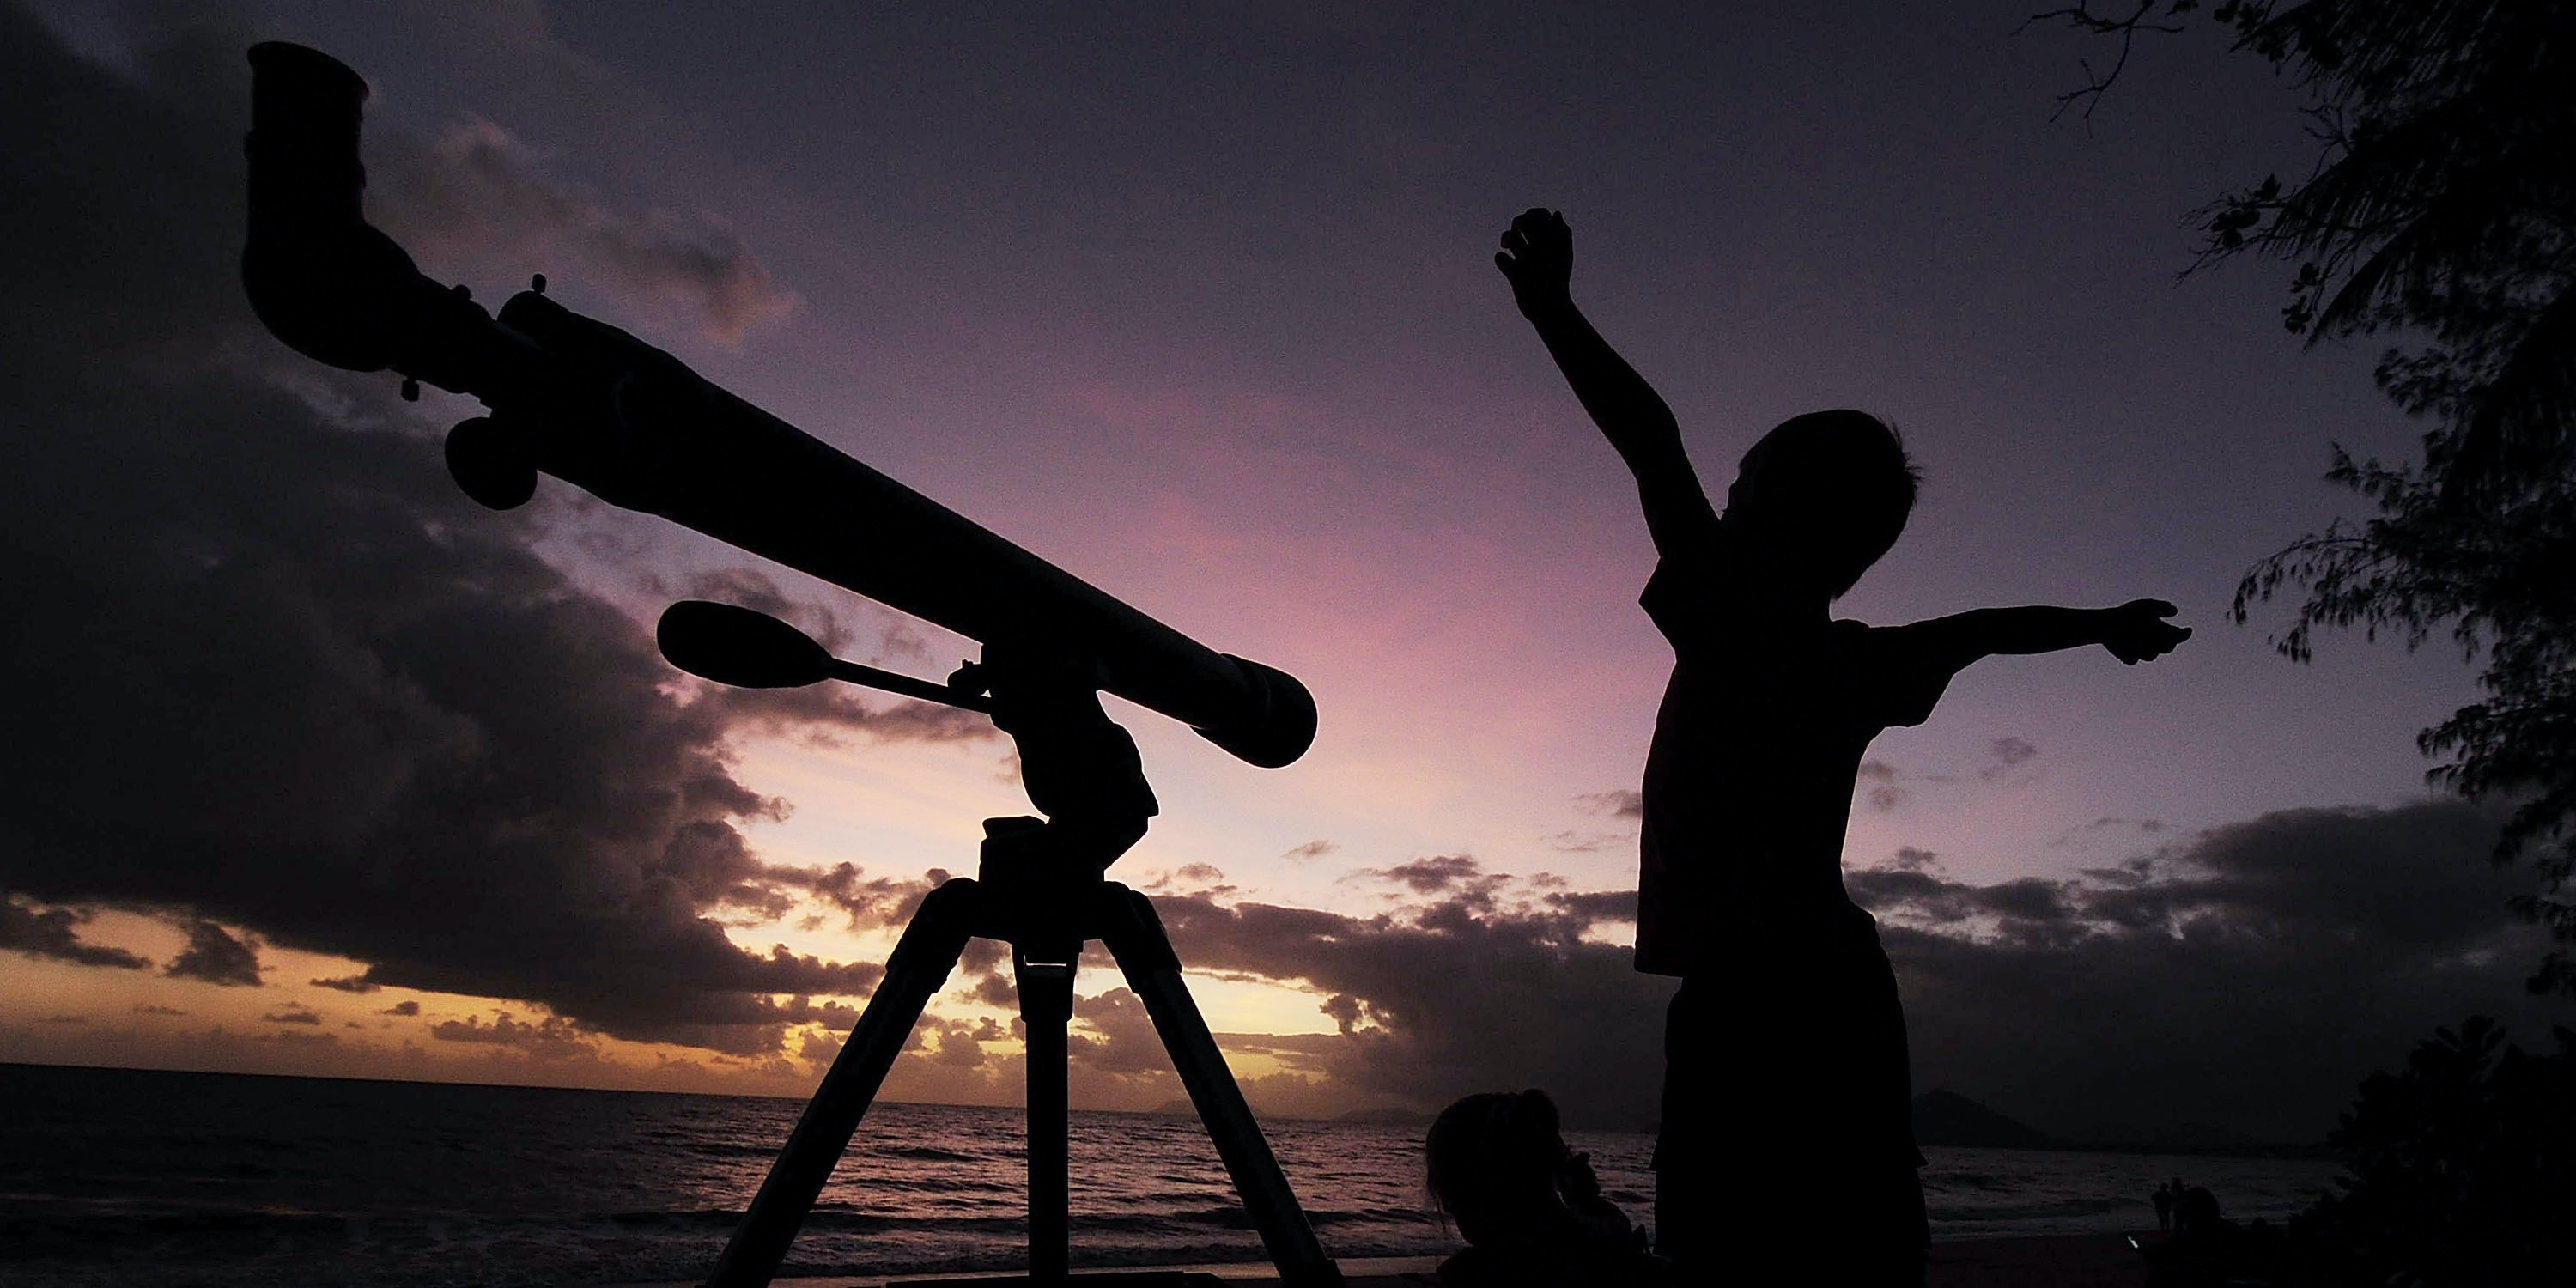 5 Things to Look for This Astronomy Day